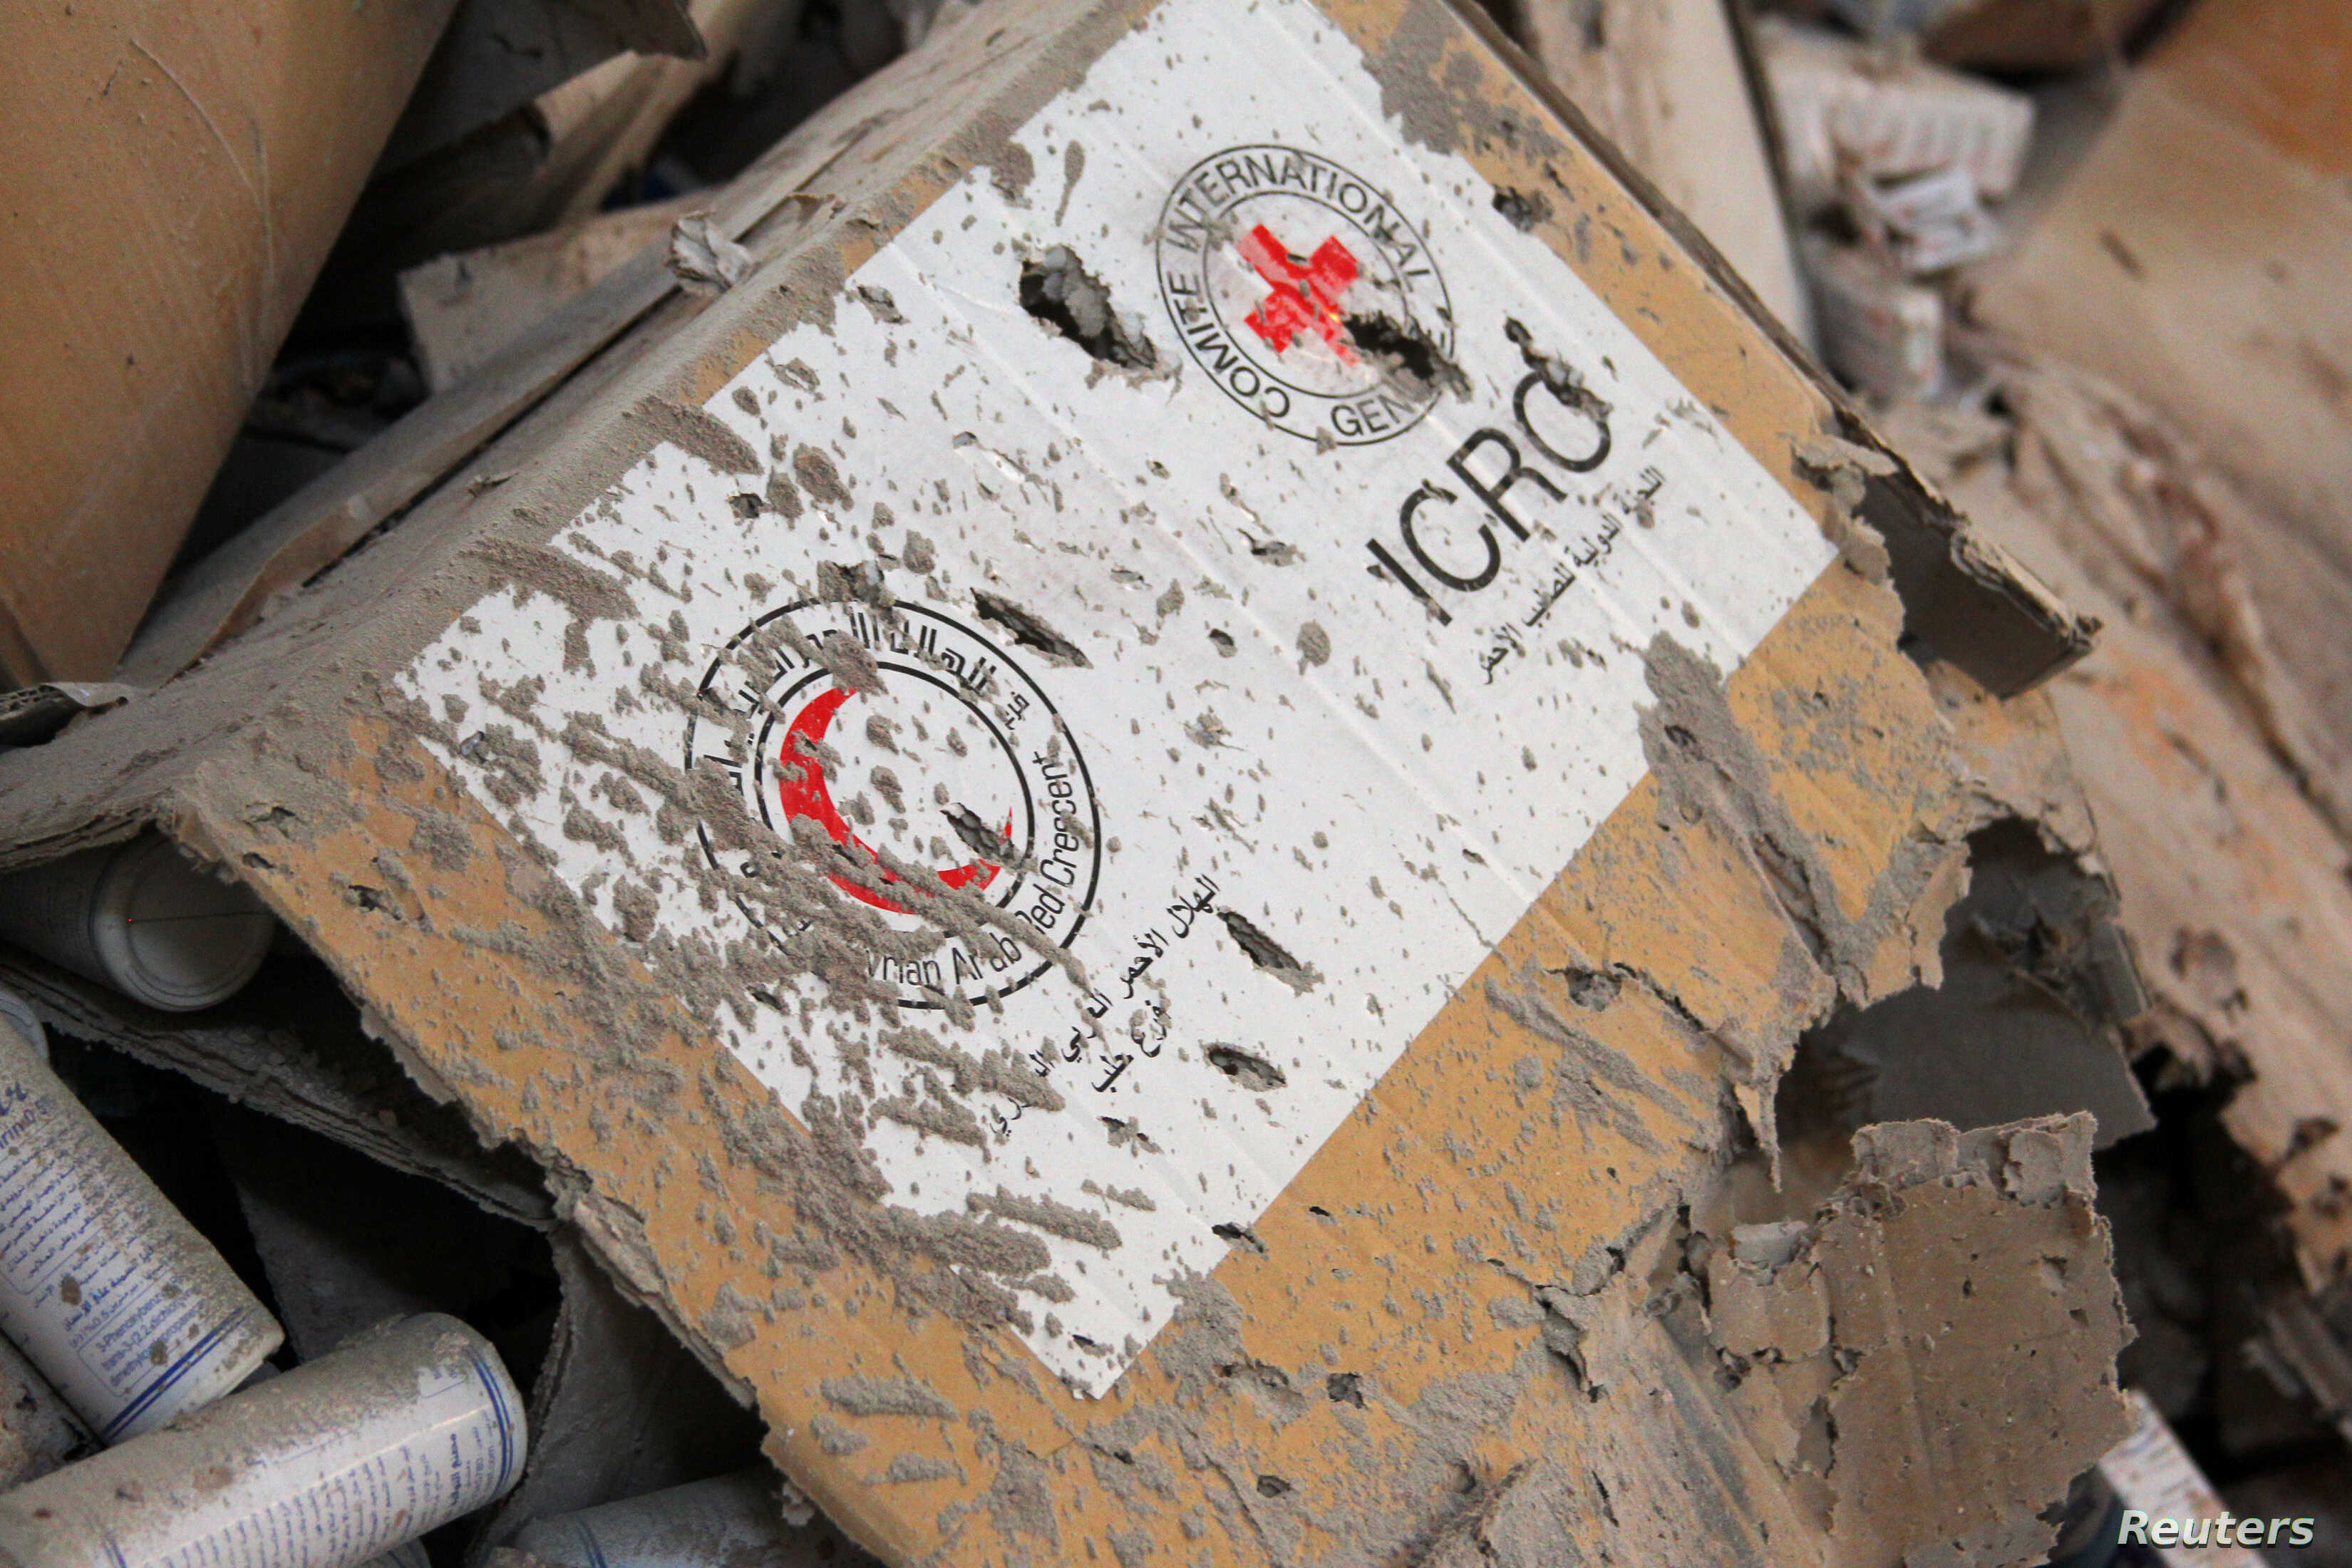 Damaged Red Cross and Red Crescent medical supplies lie inside a warehouse after an airstrike on the rebel held Urm al-Kubra town, western Aleppo city, Syria Sept. 20, 2016.